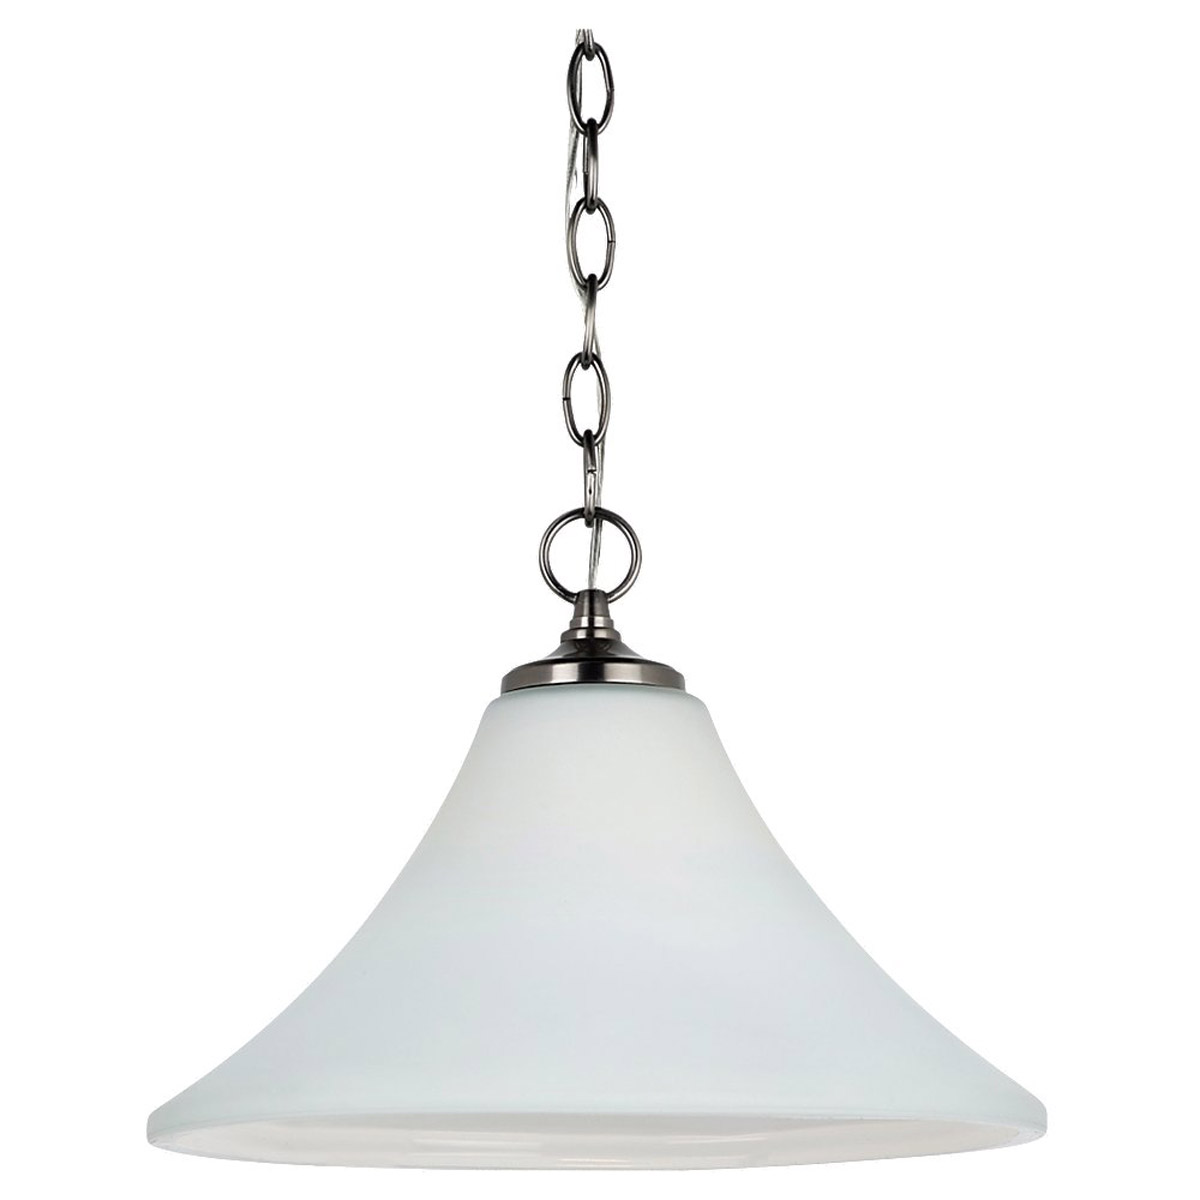 Sea Gull Lighting Montreal 1 Light Pendant Down Light in Antique Brushed Nickel 65180BLE-965